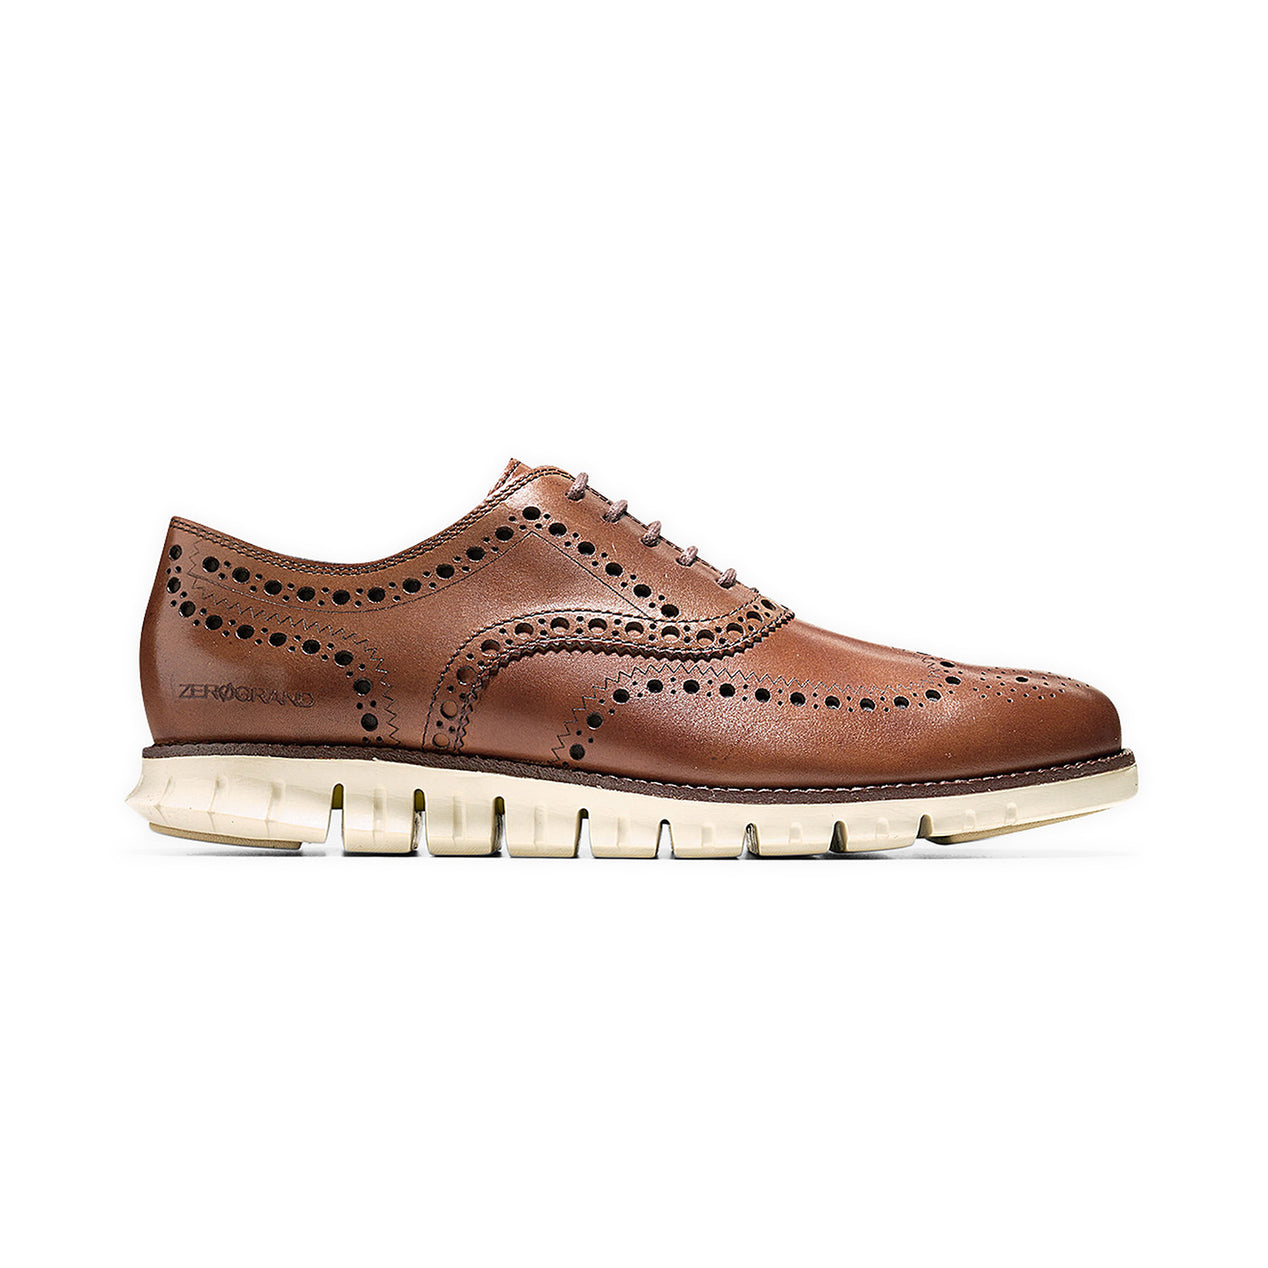 997df887826c Cole Haan Men s Zerogrand Wingtip Oxford